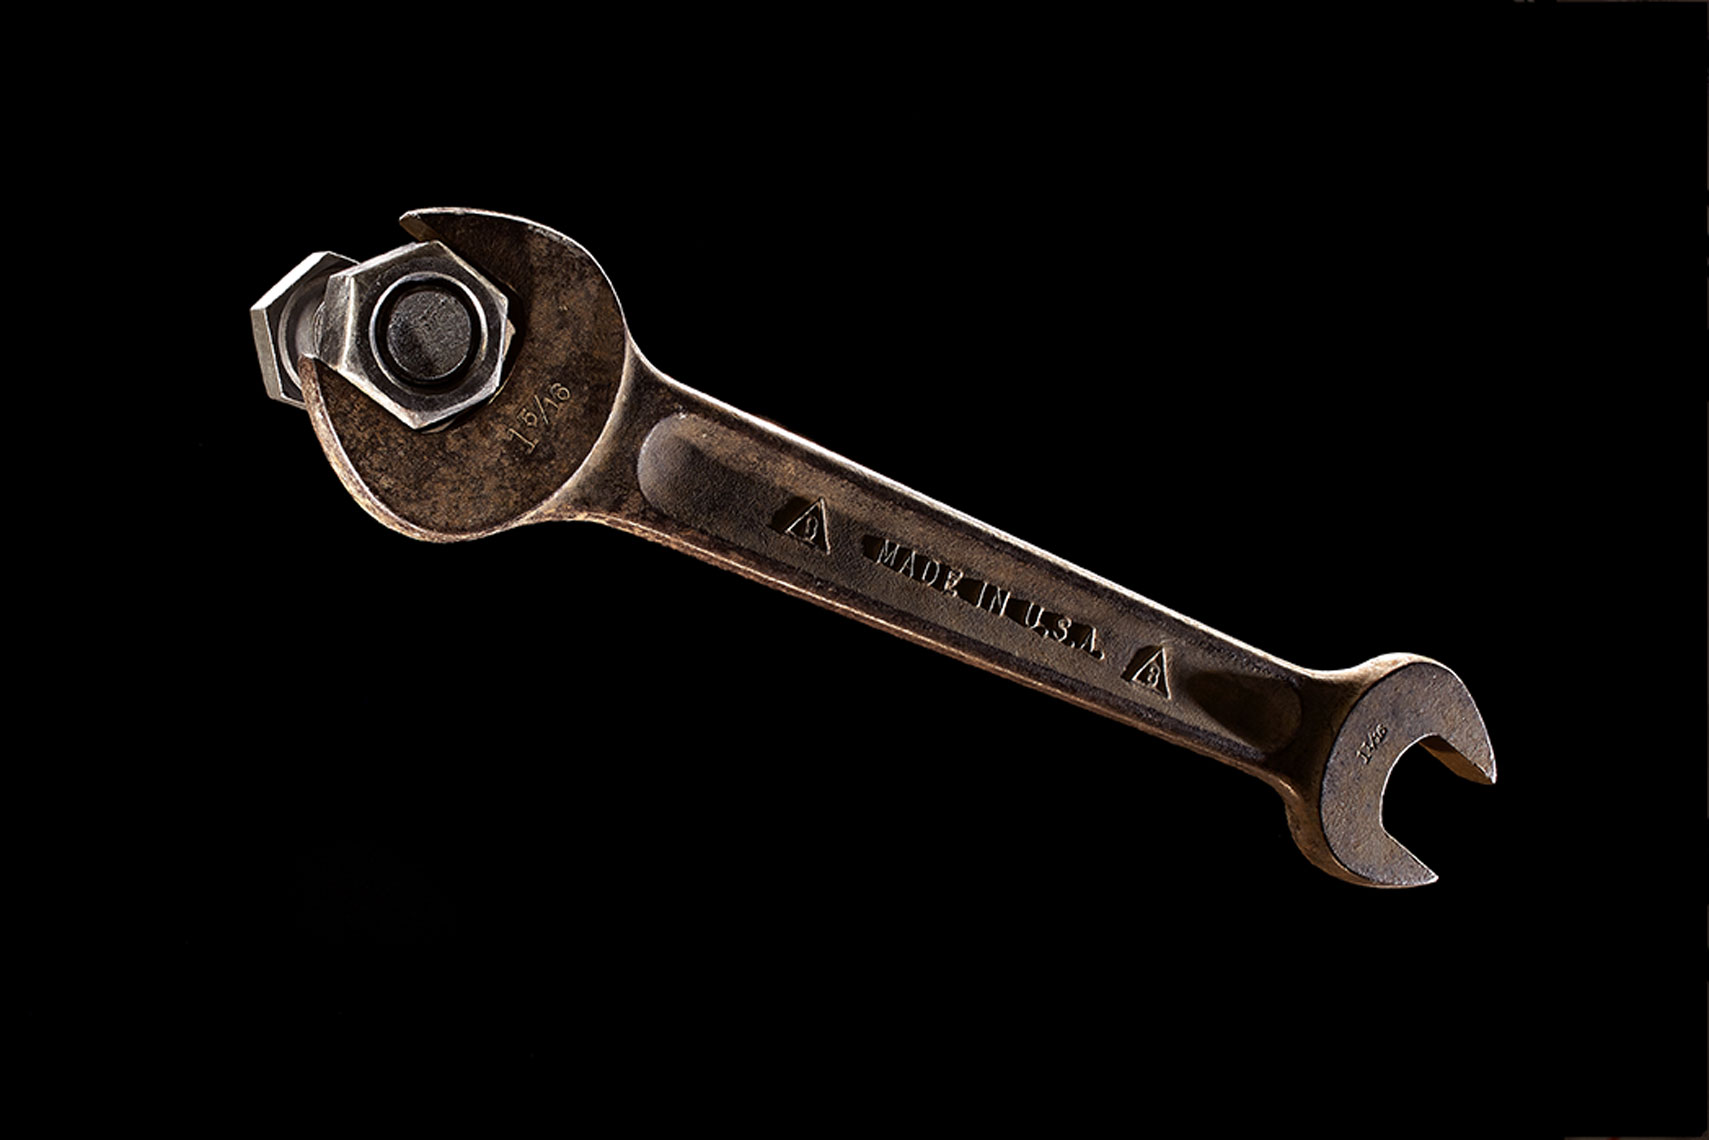 Antique-wrench-4